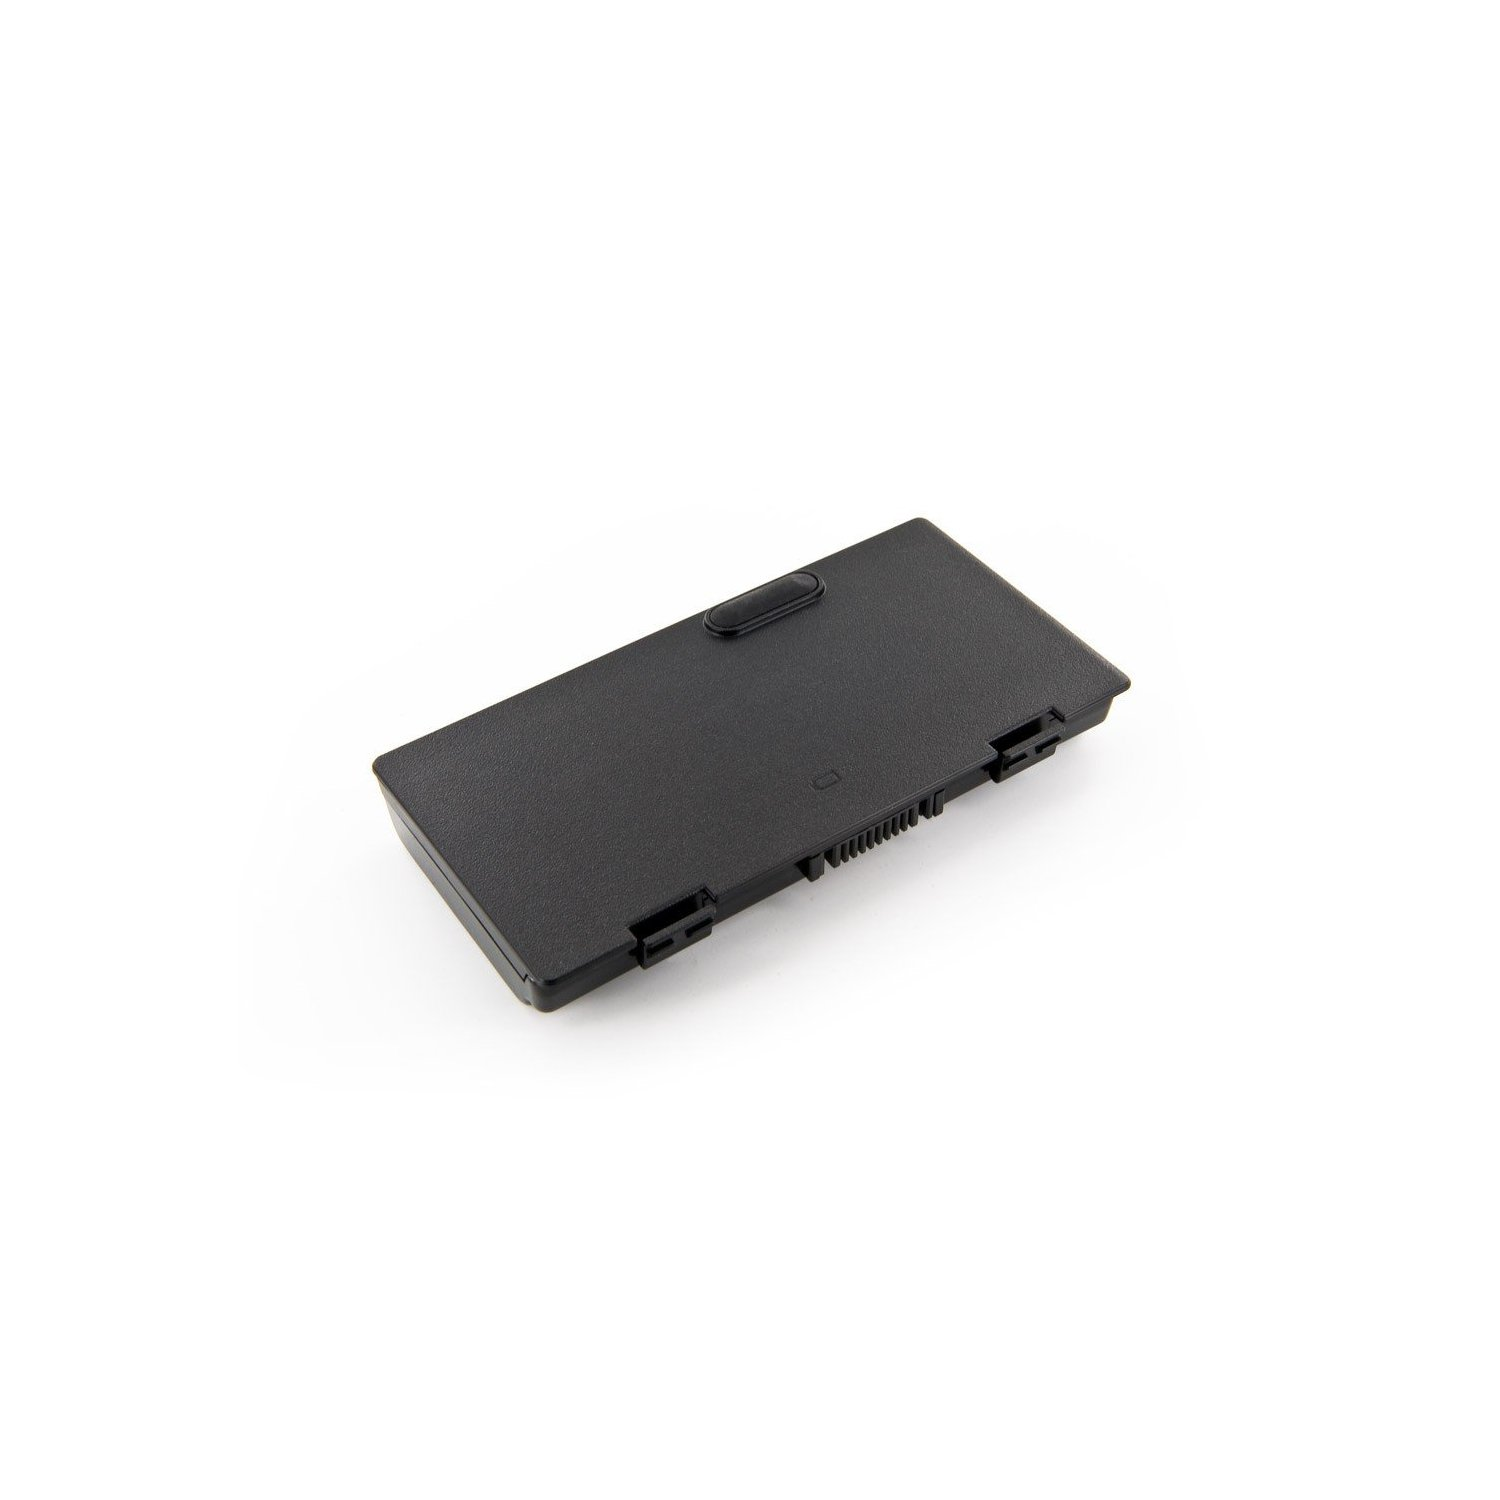 Asus A32-X51: Laptop / Notebook Battery Replacement for Asus A32-X51 (4400mAh / 49Wh)